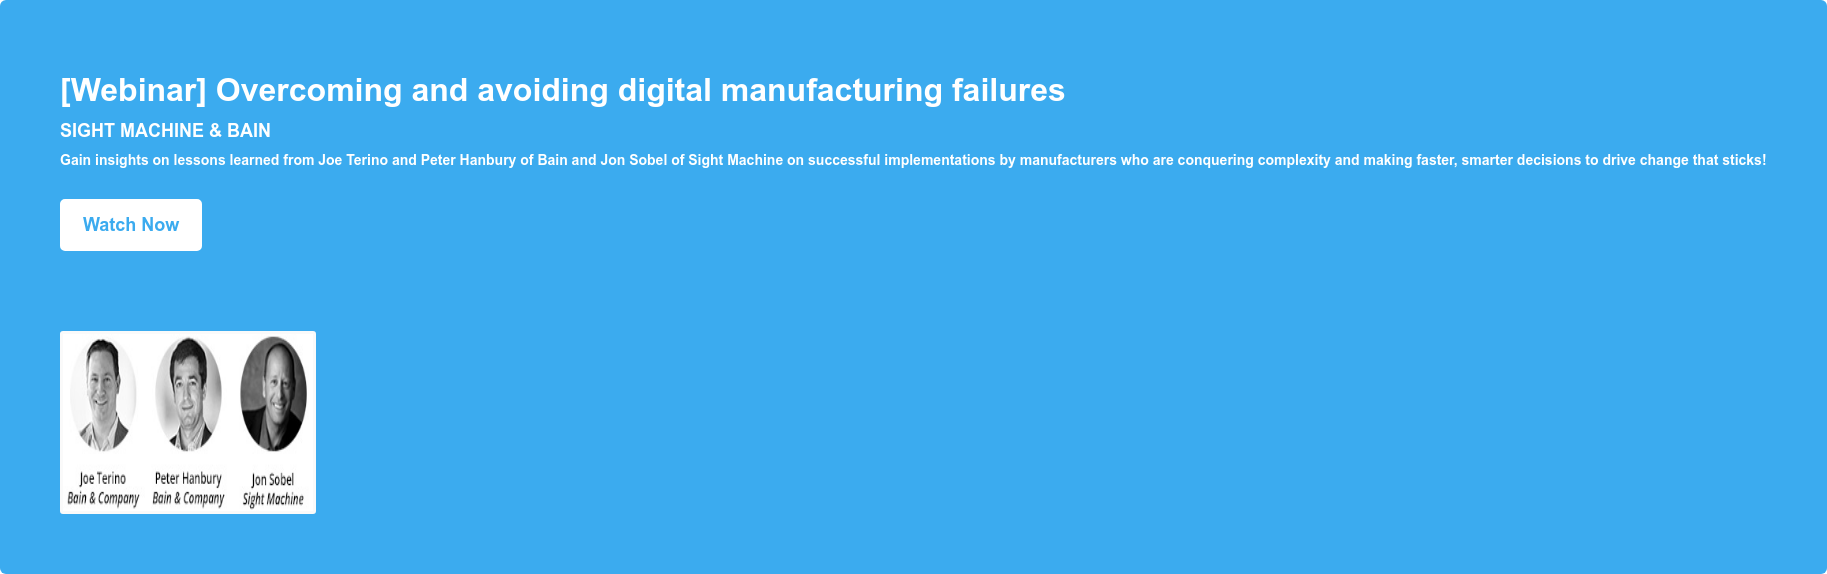 [Webinar] Overcoming and avoiding digital manufacturing failures Sight Machine & Bain Gain insights on lessons learned from Joe Terino and Peter Hanbury of Bain and Jon Sobel of Sight Machine on successful implementations by manufacturers who are conquering complexity and making faster, smarter decisions to drive change that sticks! Watch Now